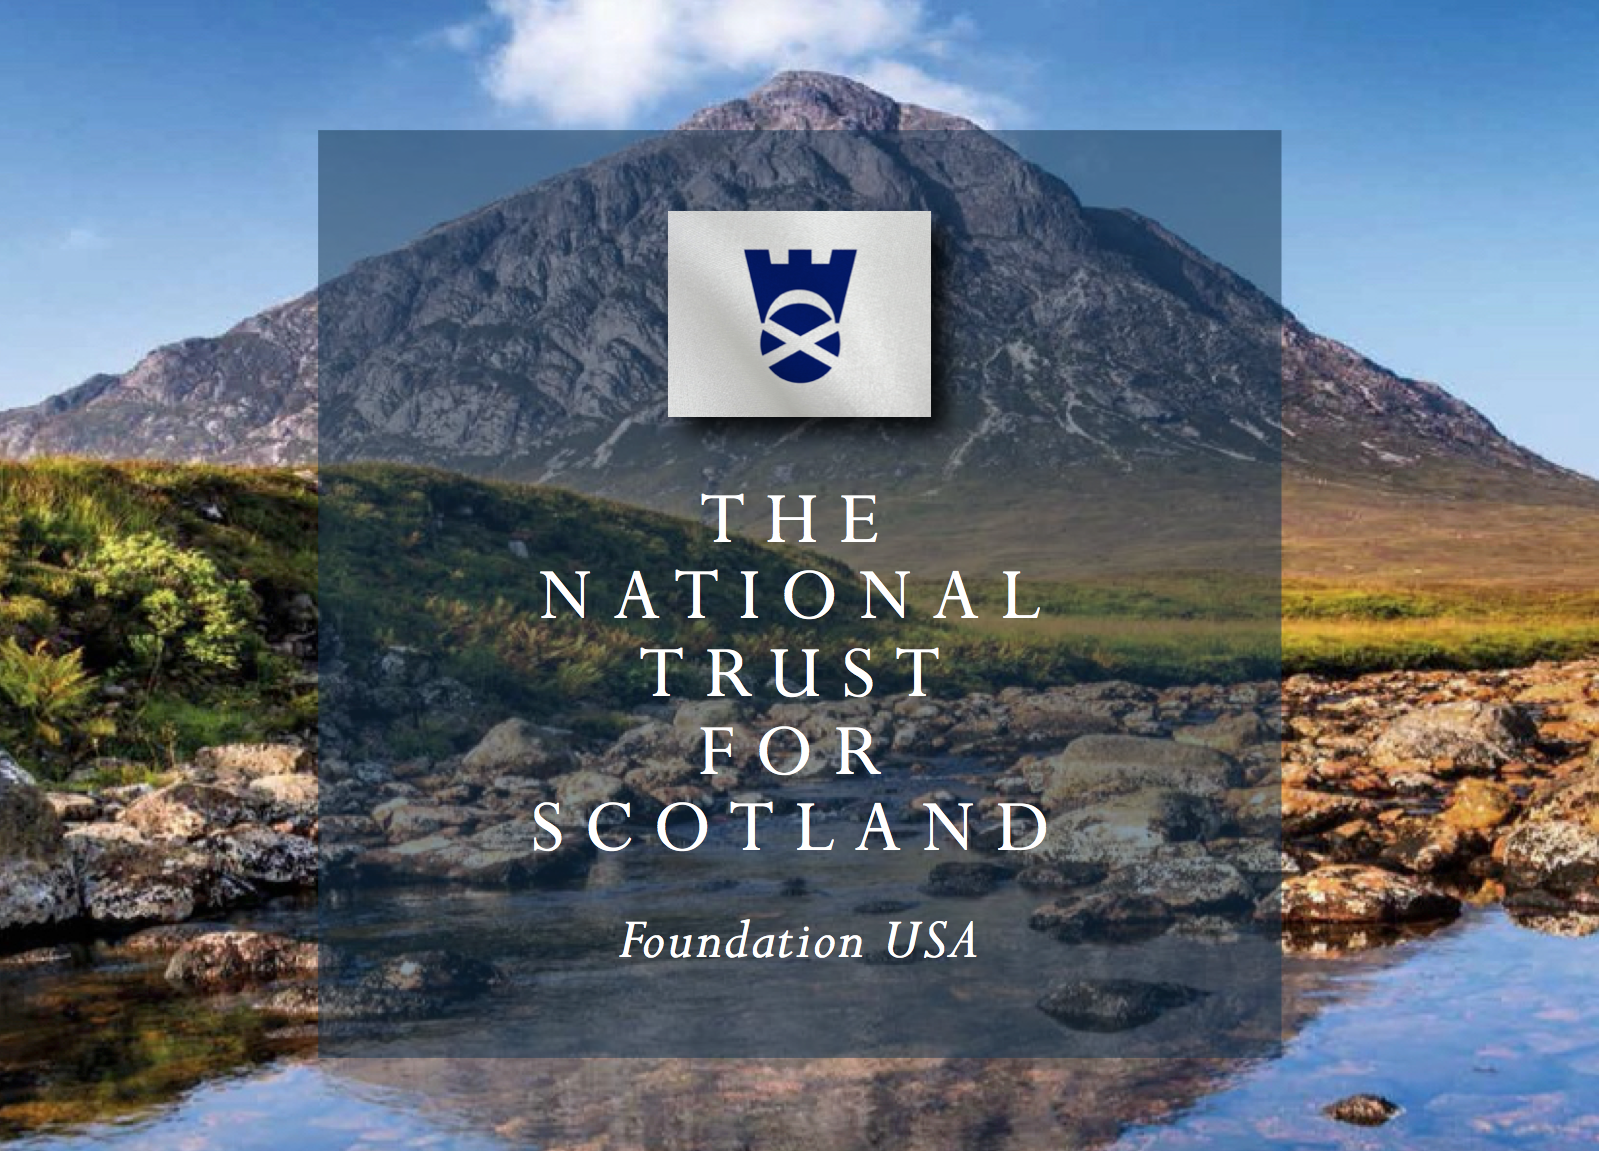 The National Trust for Scotland USA